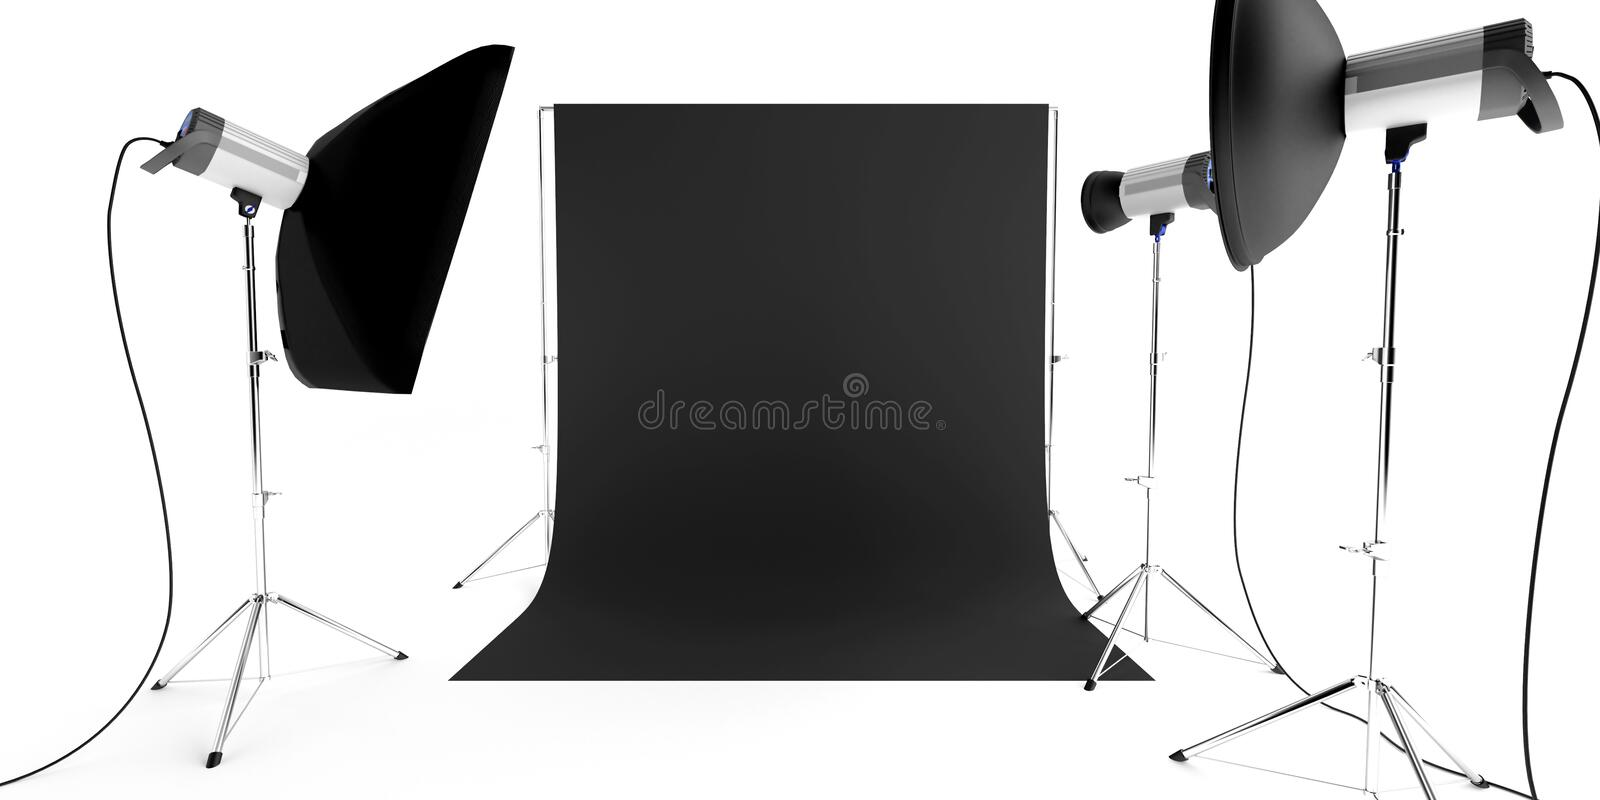 Équipement de studio de photo photos stock